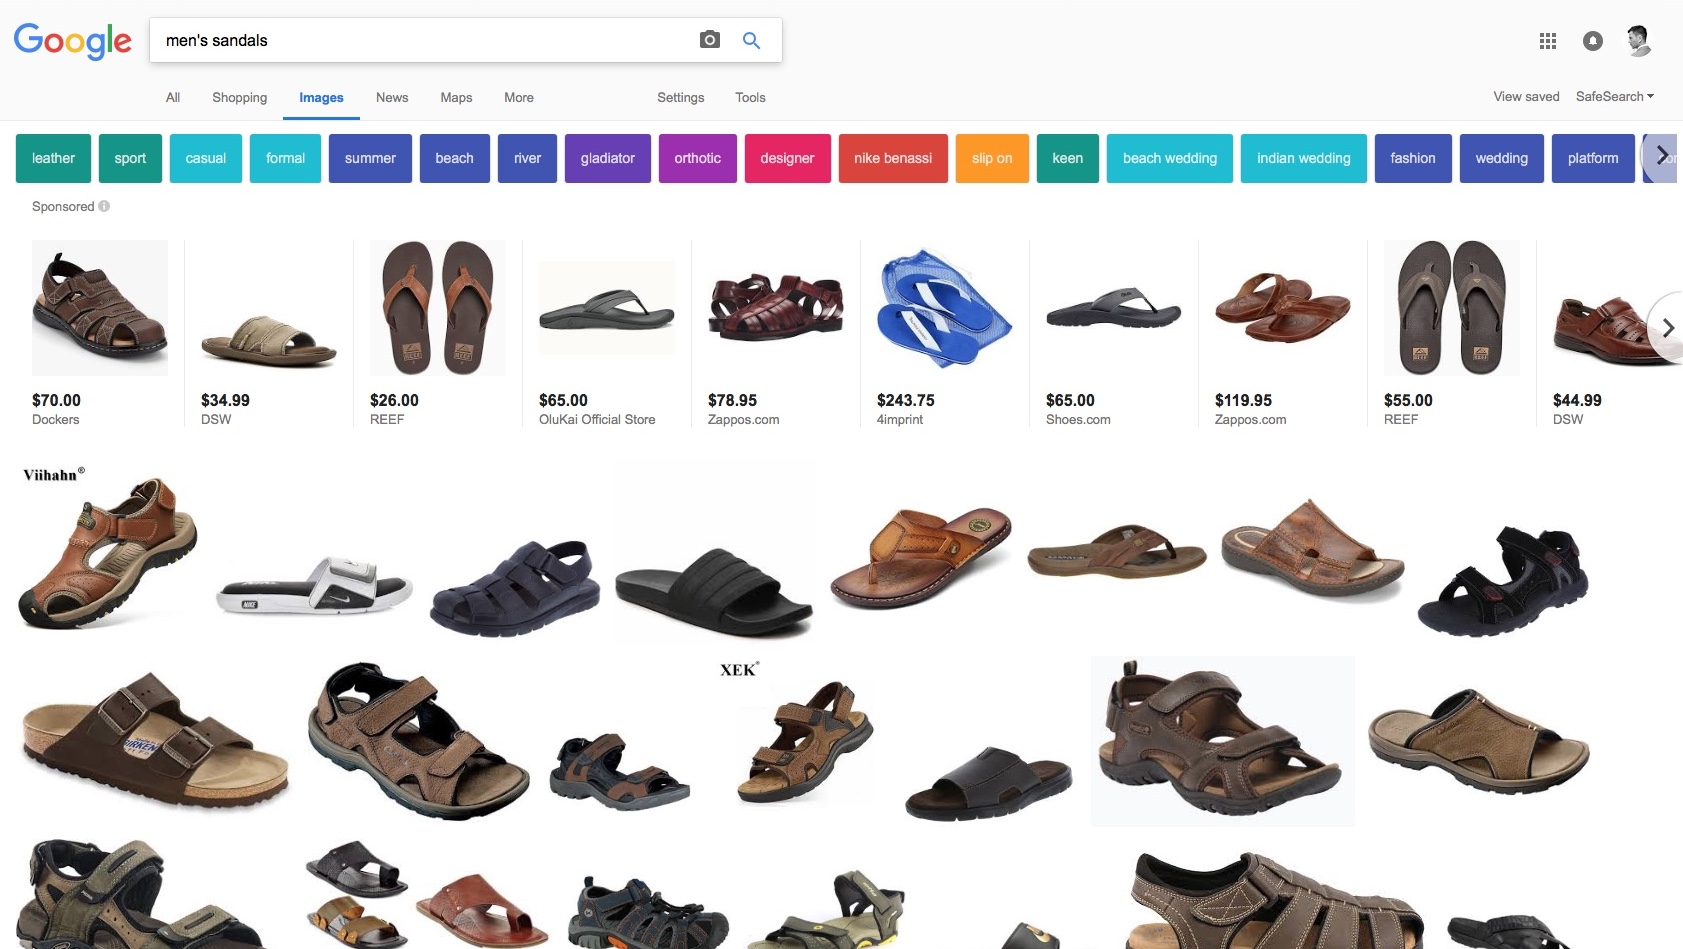 """203f36a75 Google image search results for """"men's sandals,"""" i.e. uglytown."""